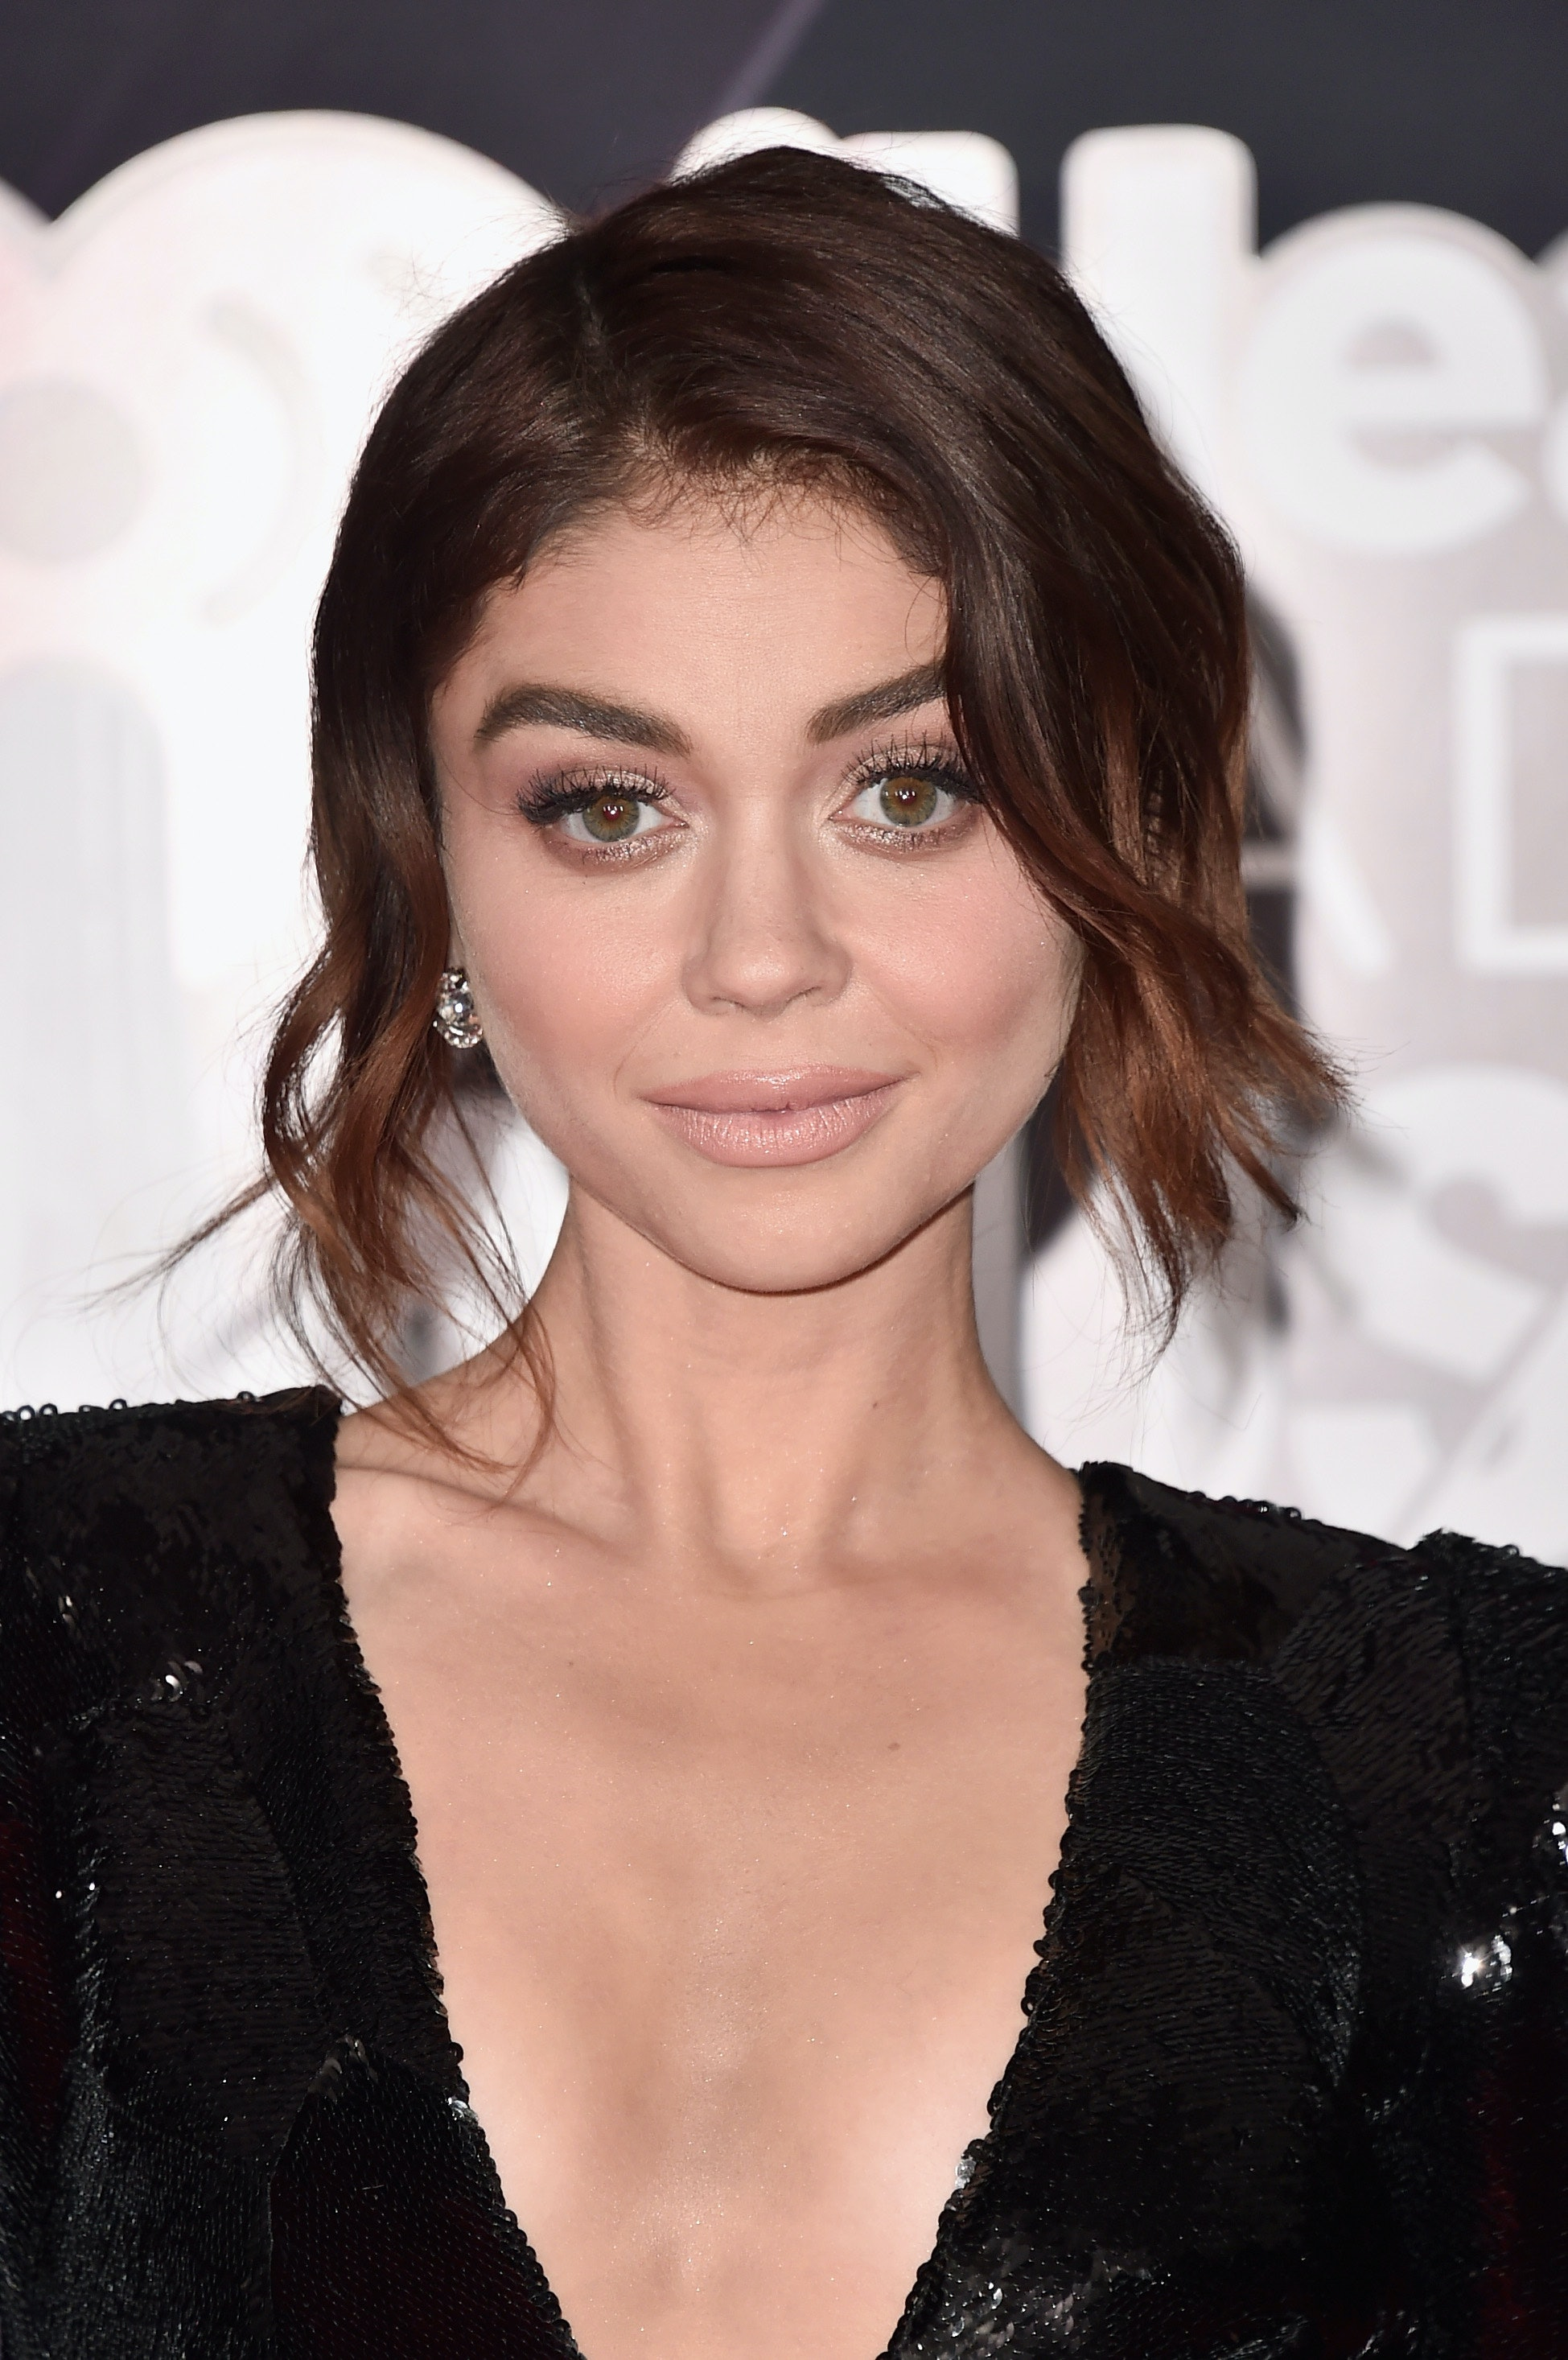 Sarah Hyland Just Got Long, Gorgeous, Dark Brown HairExtensions picture